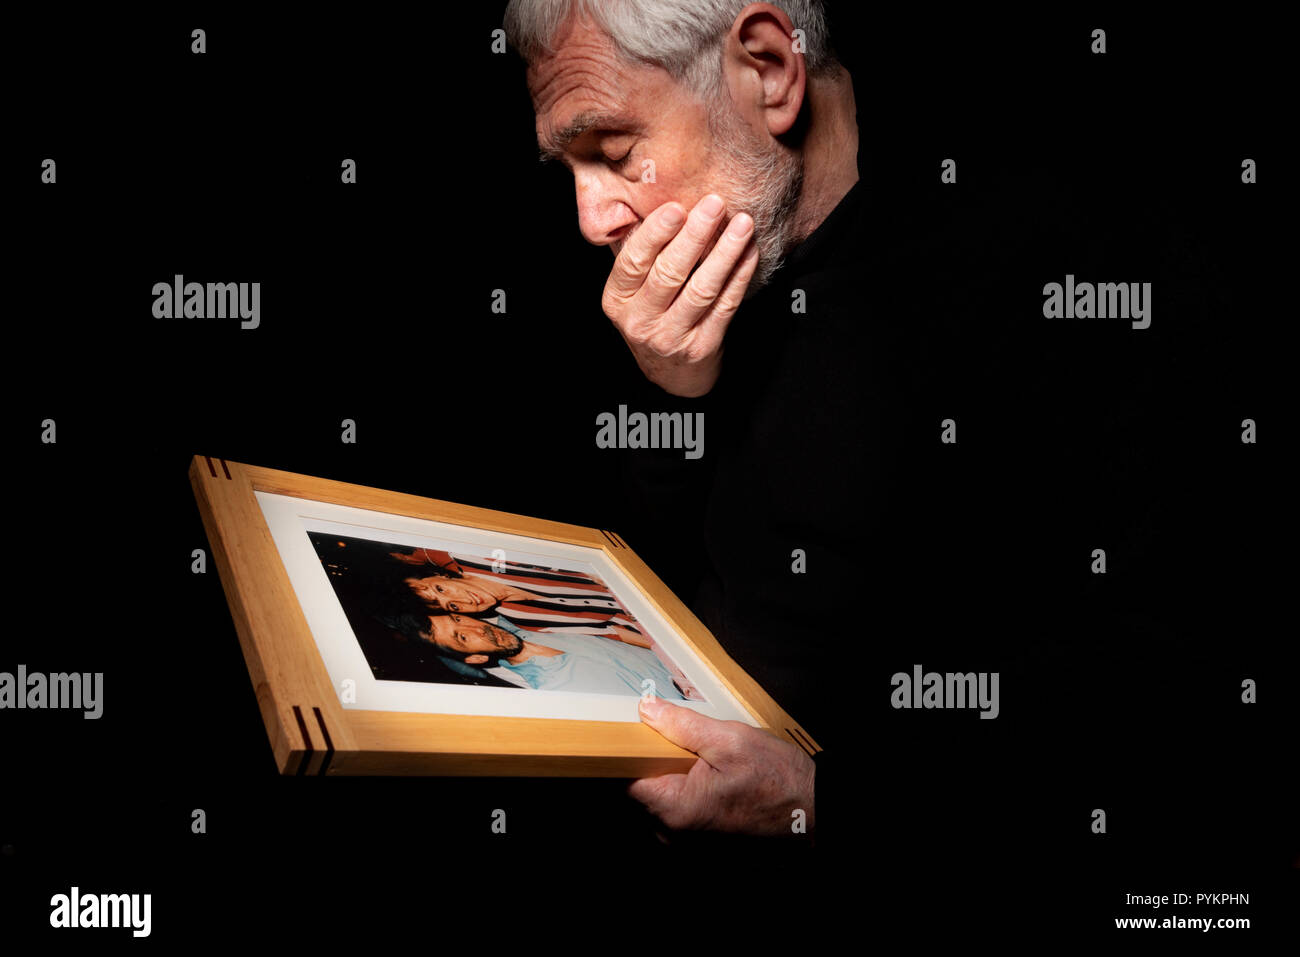 Senior grieving man. Remembering a departed loved one. Male experiencing loss and loneliness. - Stock Image